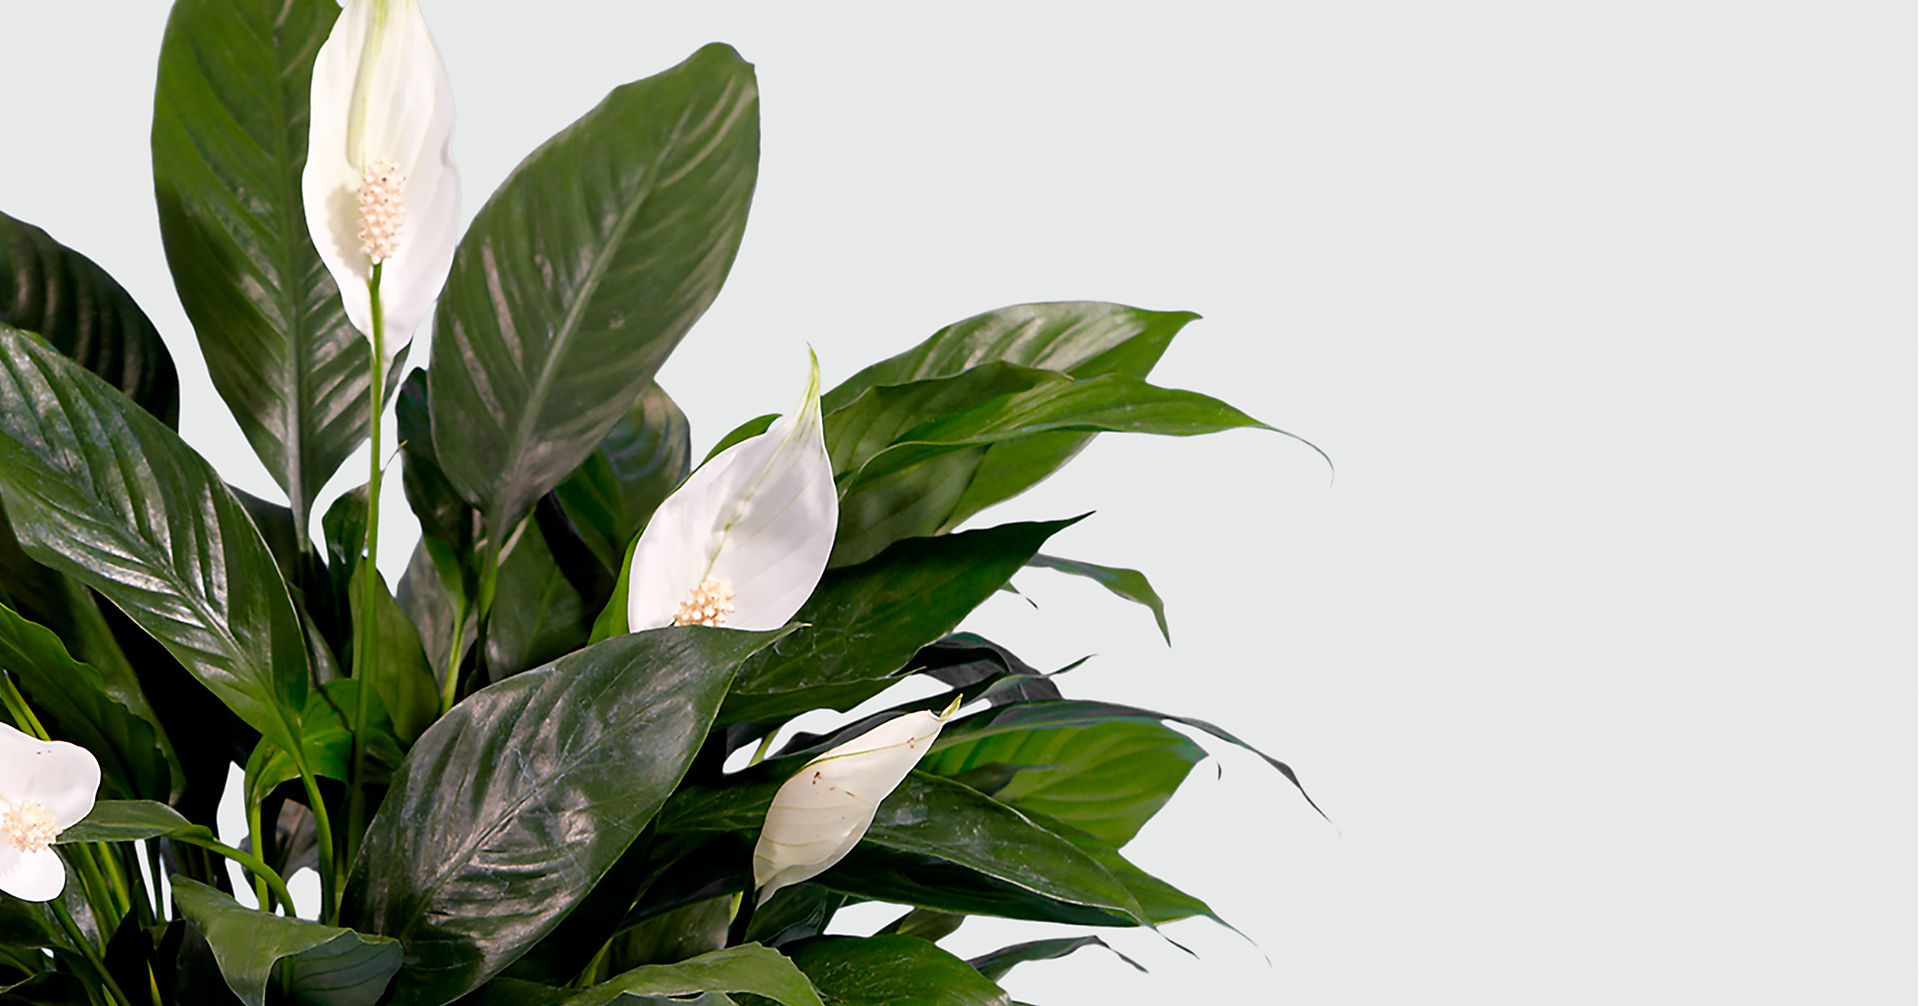 Prayers for Peace Lily Plant - Image 2 Of 2